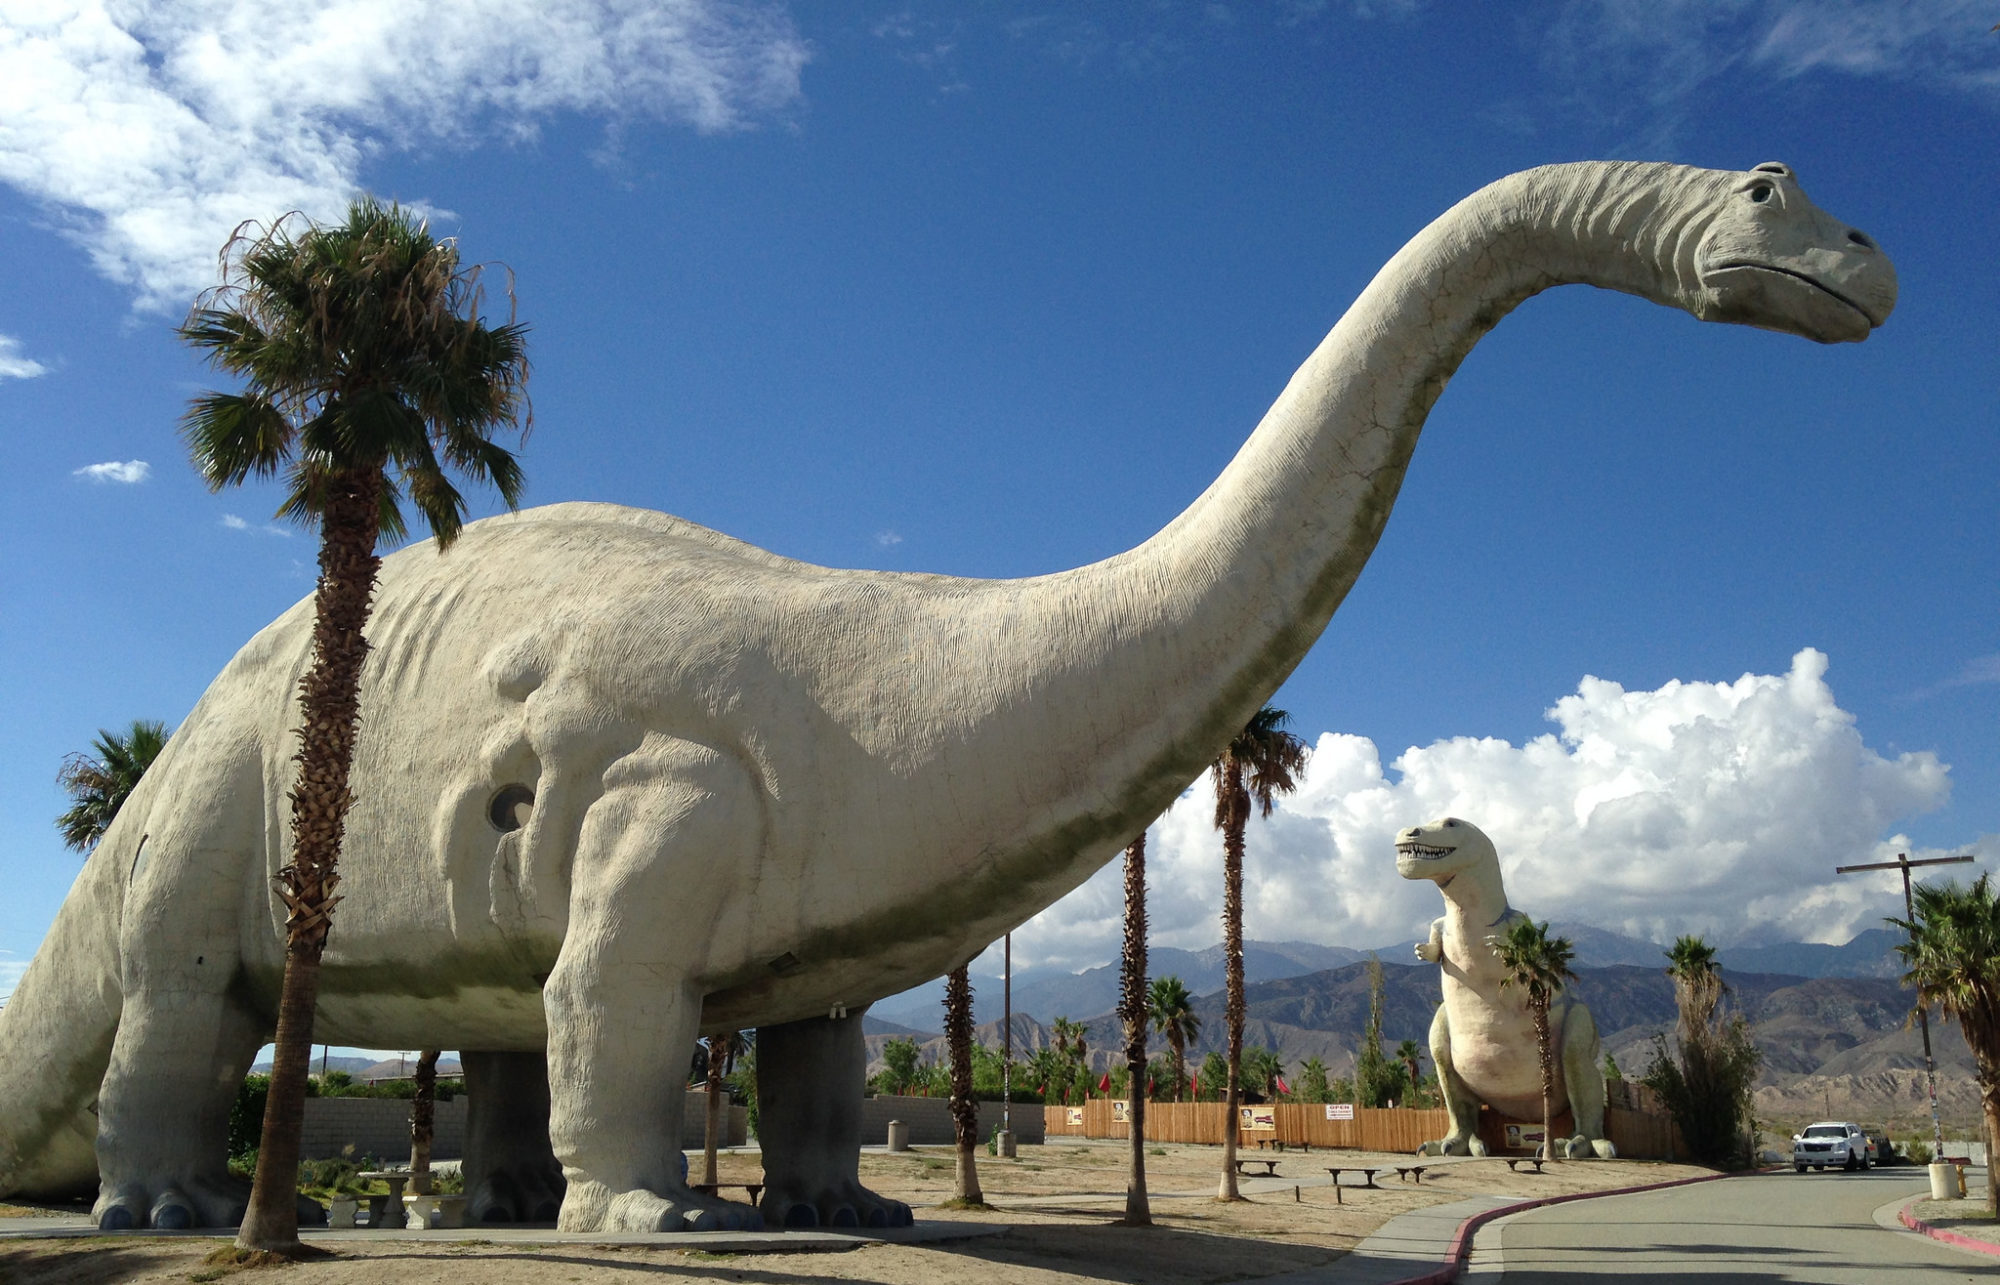 These 8 Roadside Attractions In Southern California Will Make You Do A Double Take